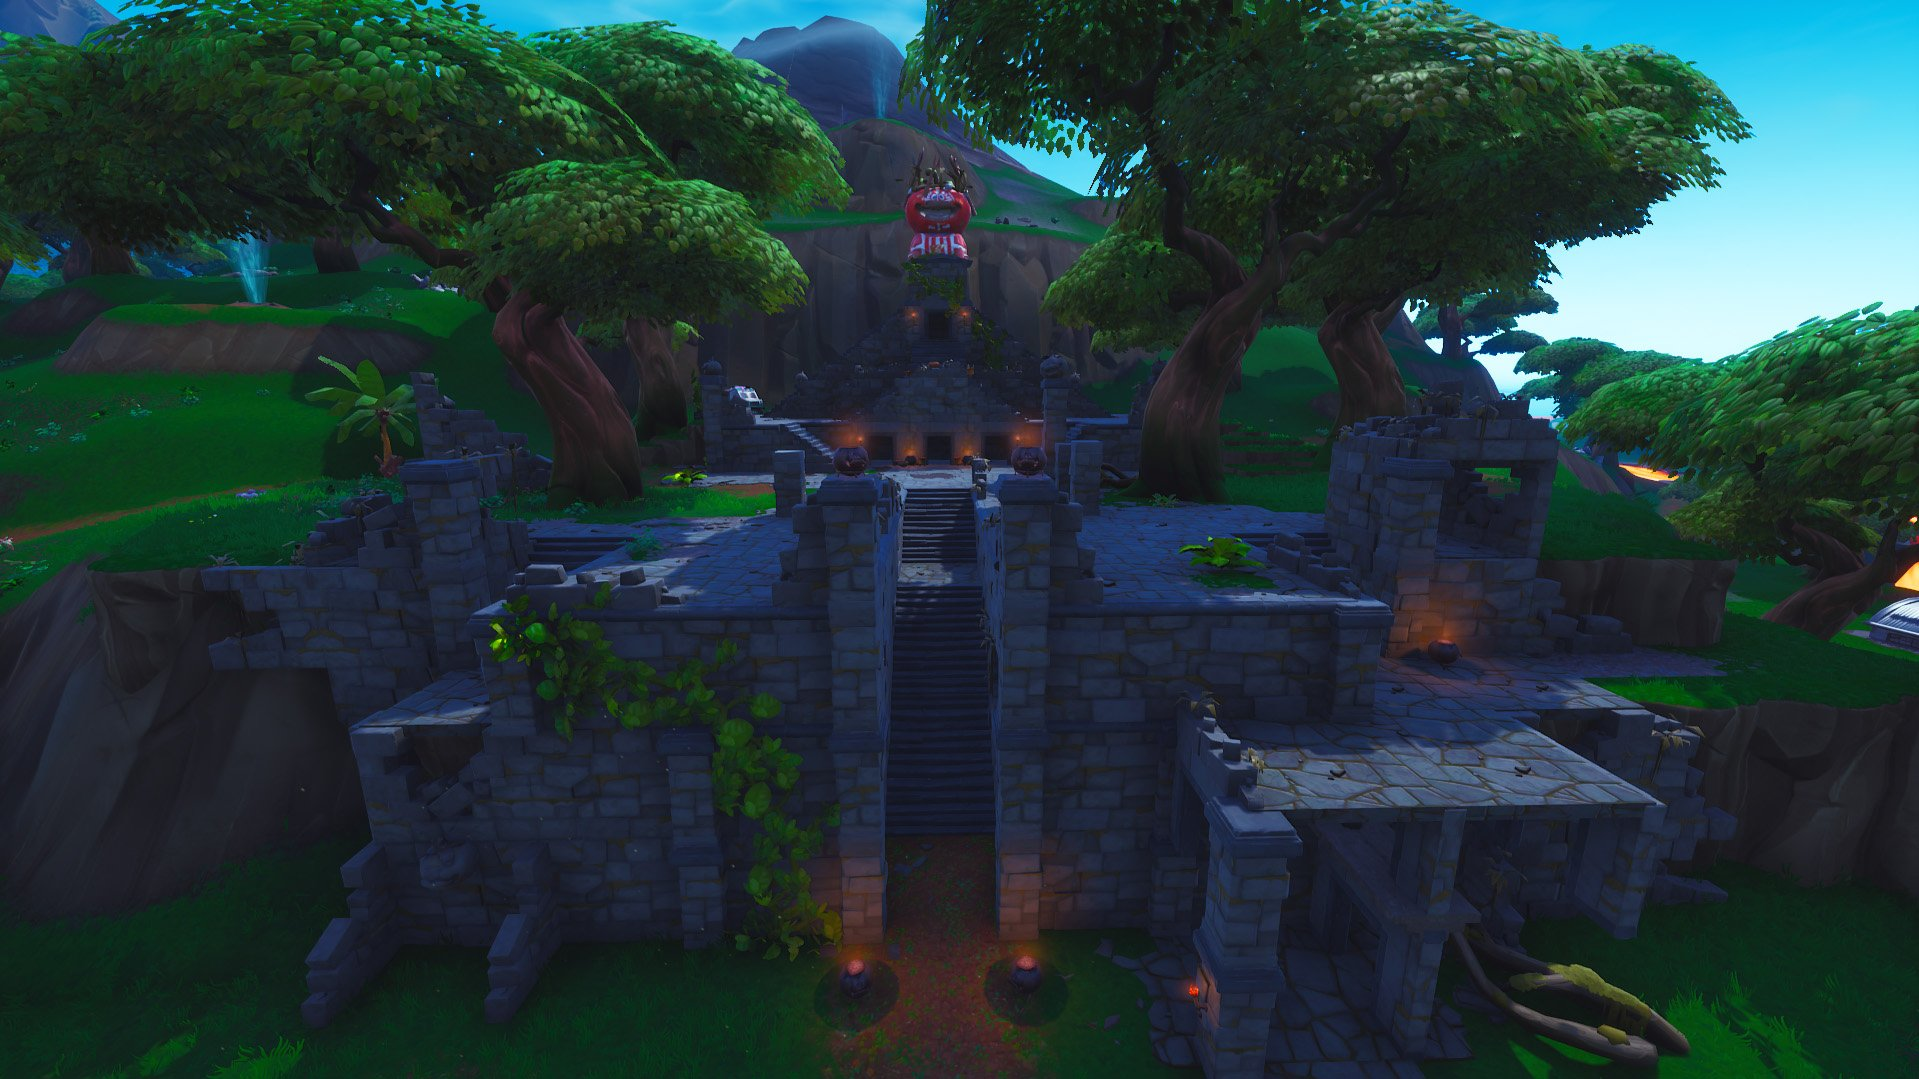 Fortnite tomato temple pieces